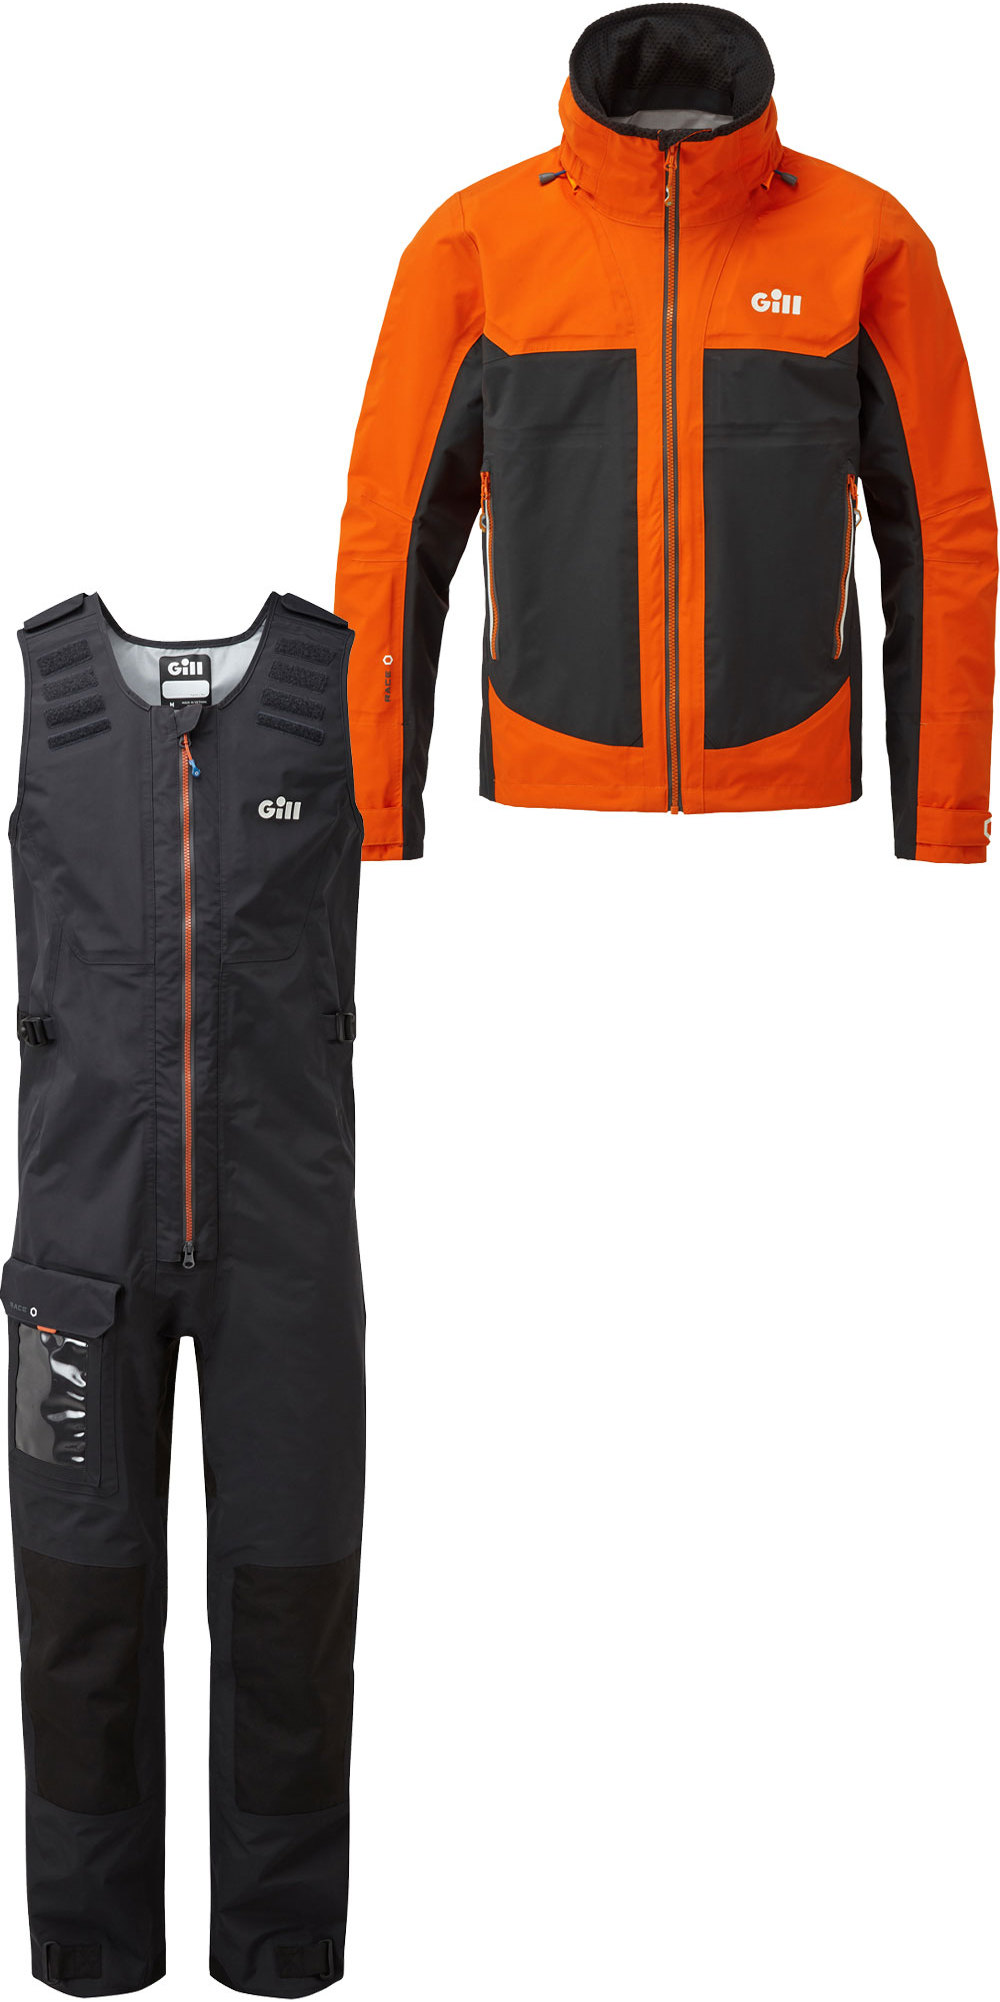 2019 Gill Mens Race Fusion Jacket Rs23 & Salopettes Rs25